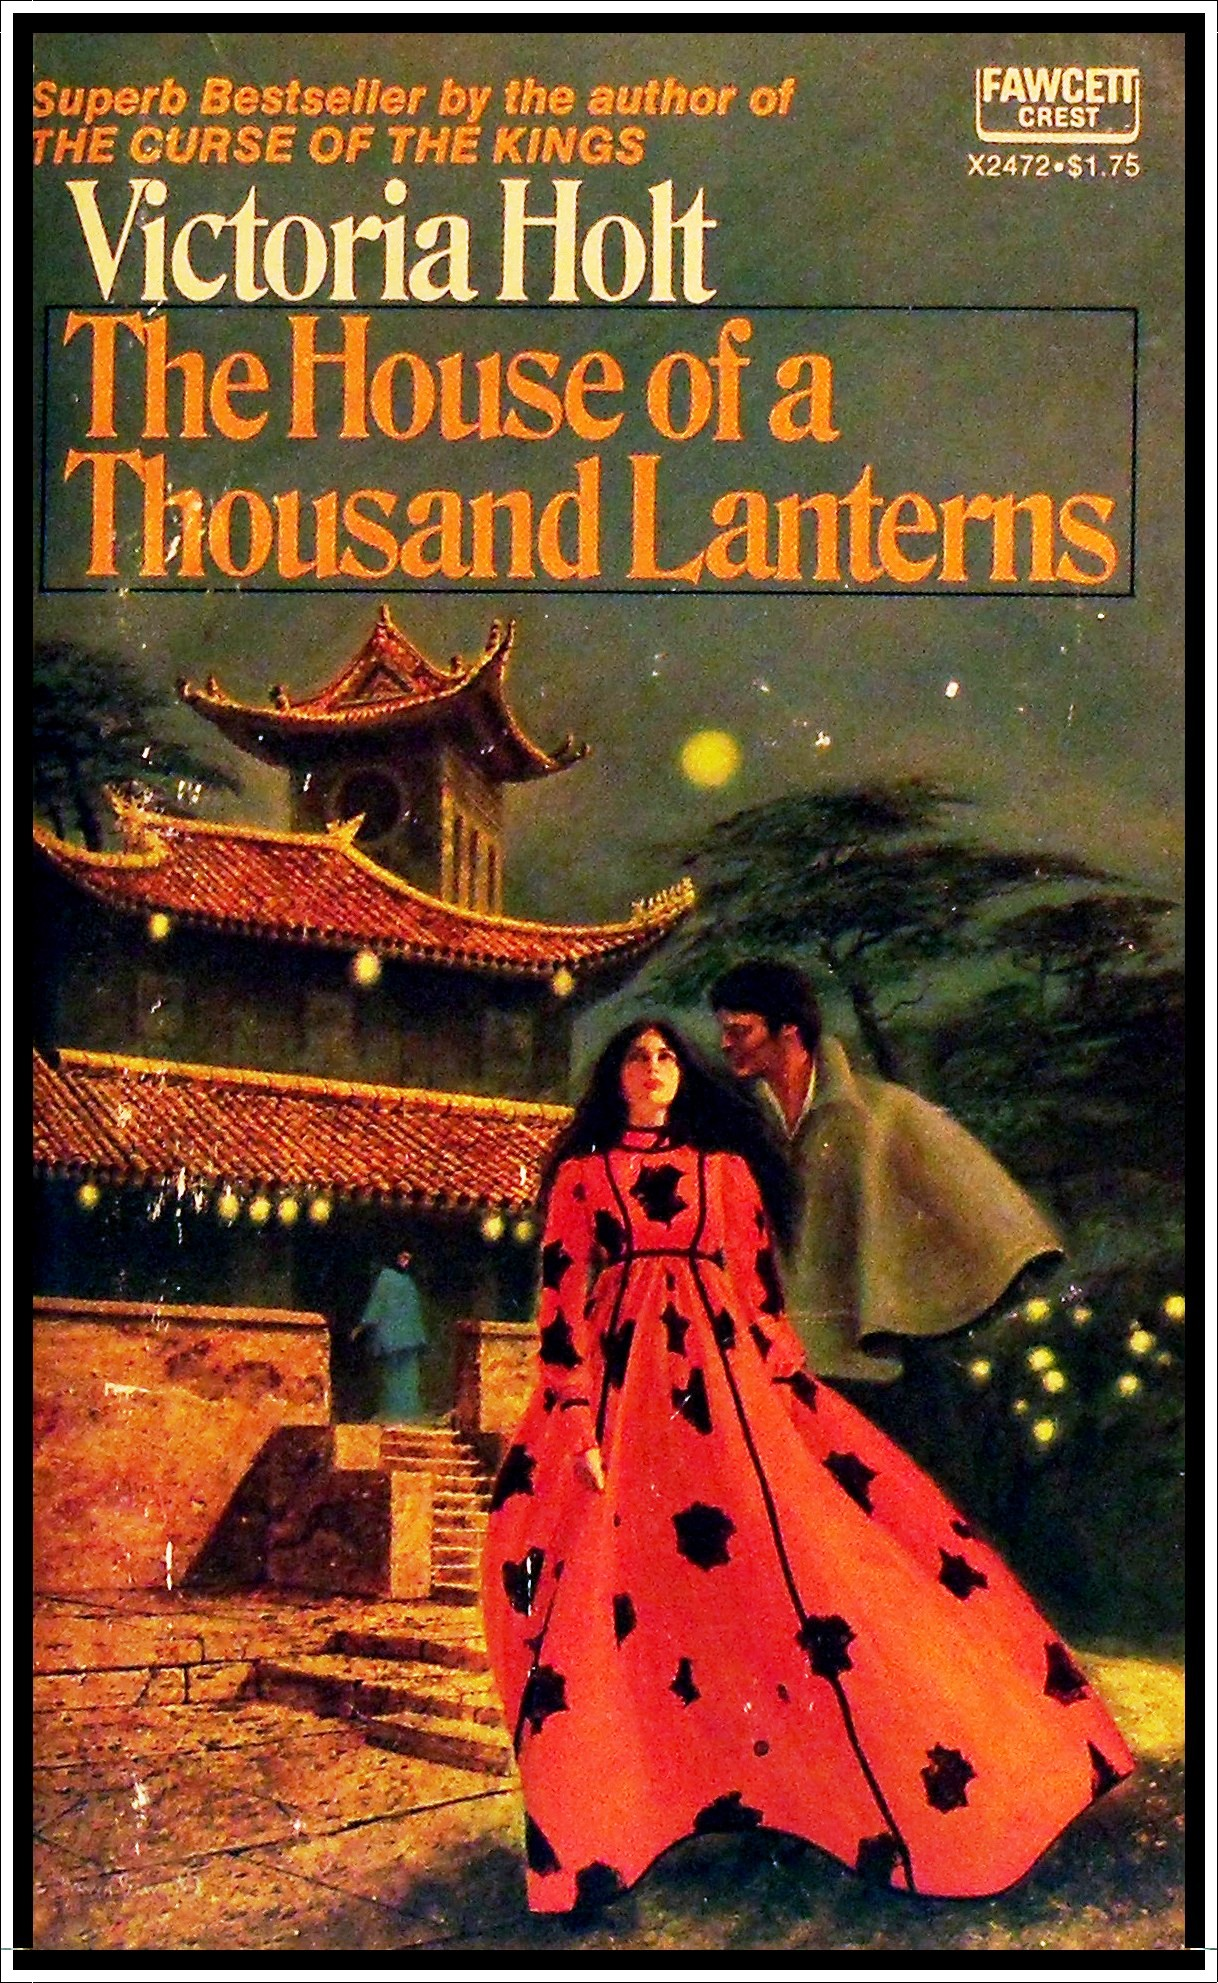 Cover of The House of a Thousand Lanterns by Victoria Holt